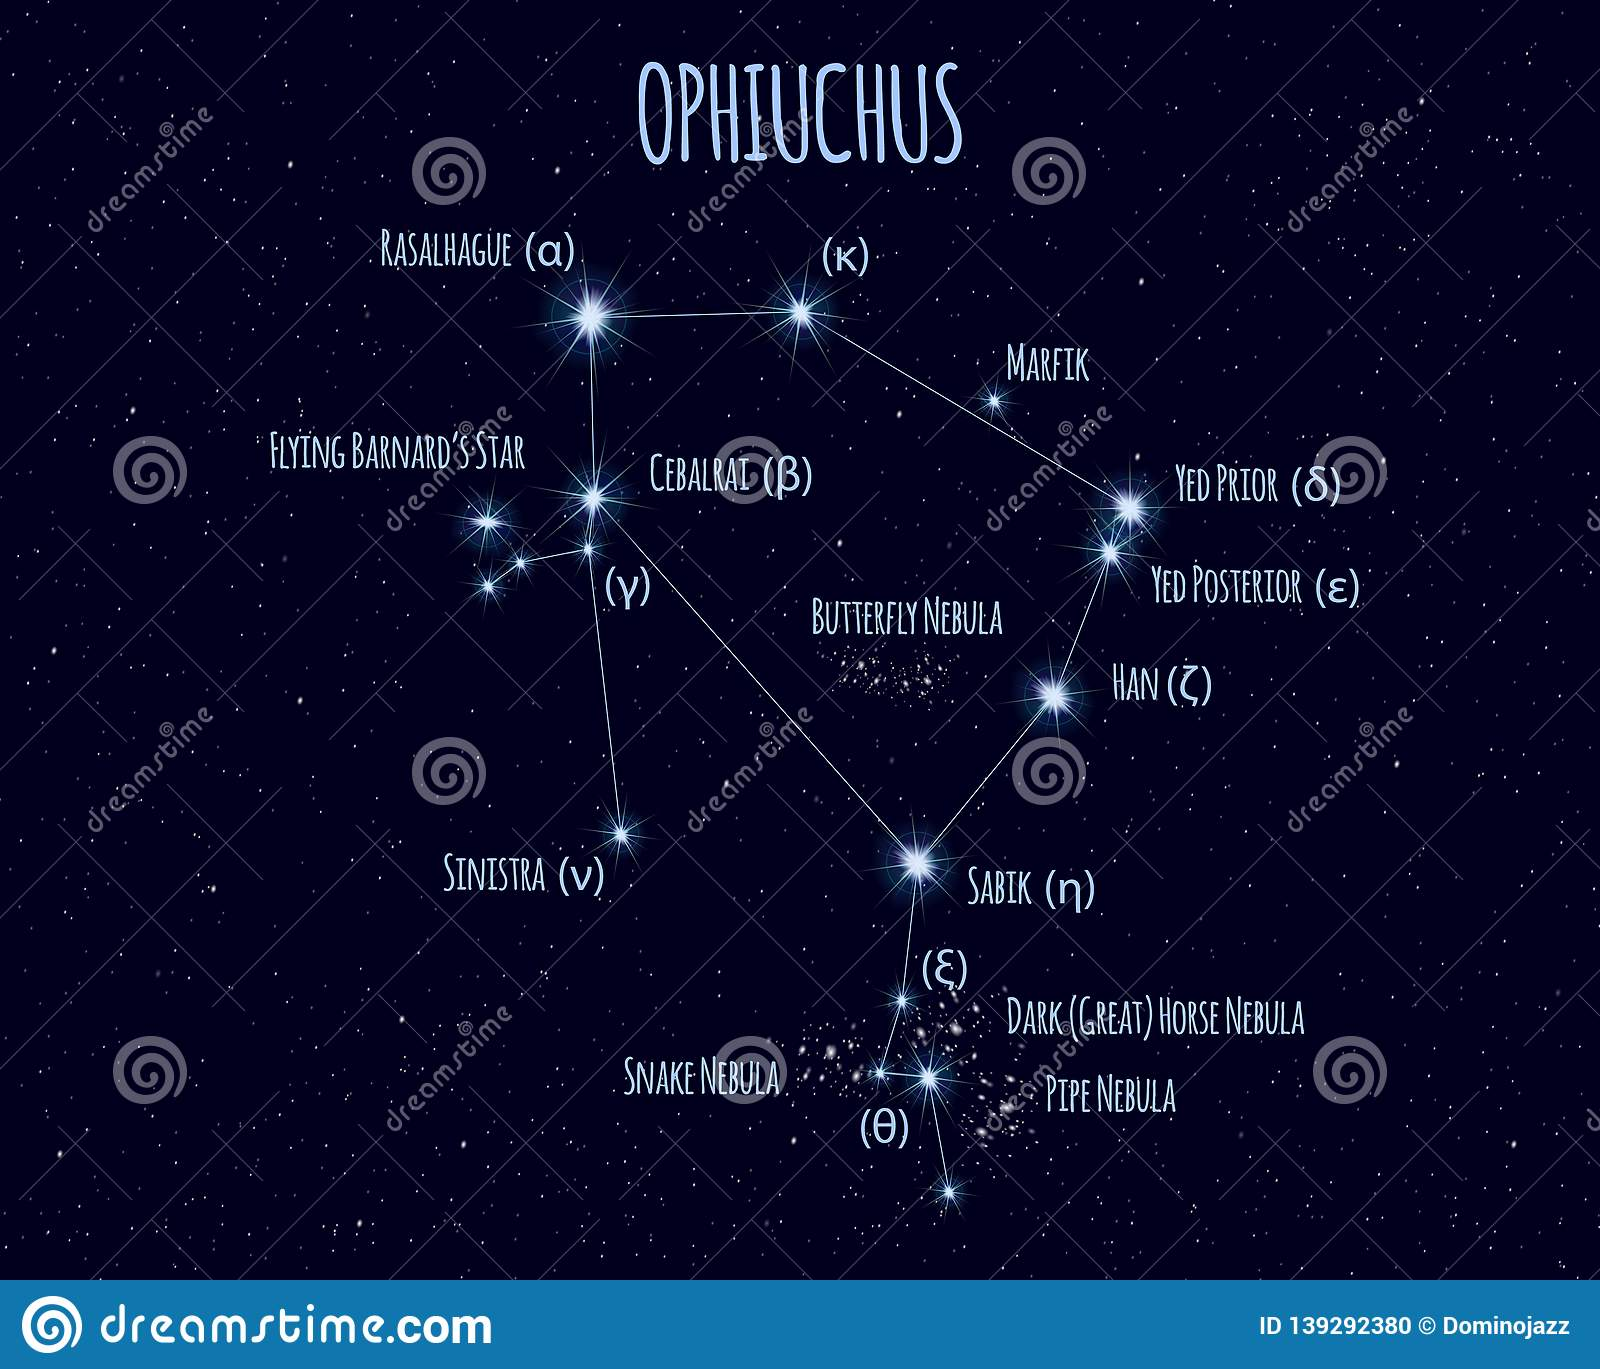 Ophiuchus Constellation, Vector Illustration With The ...